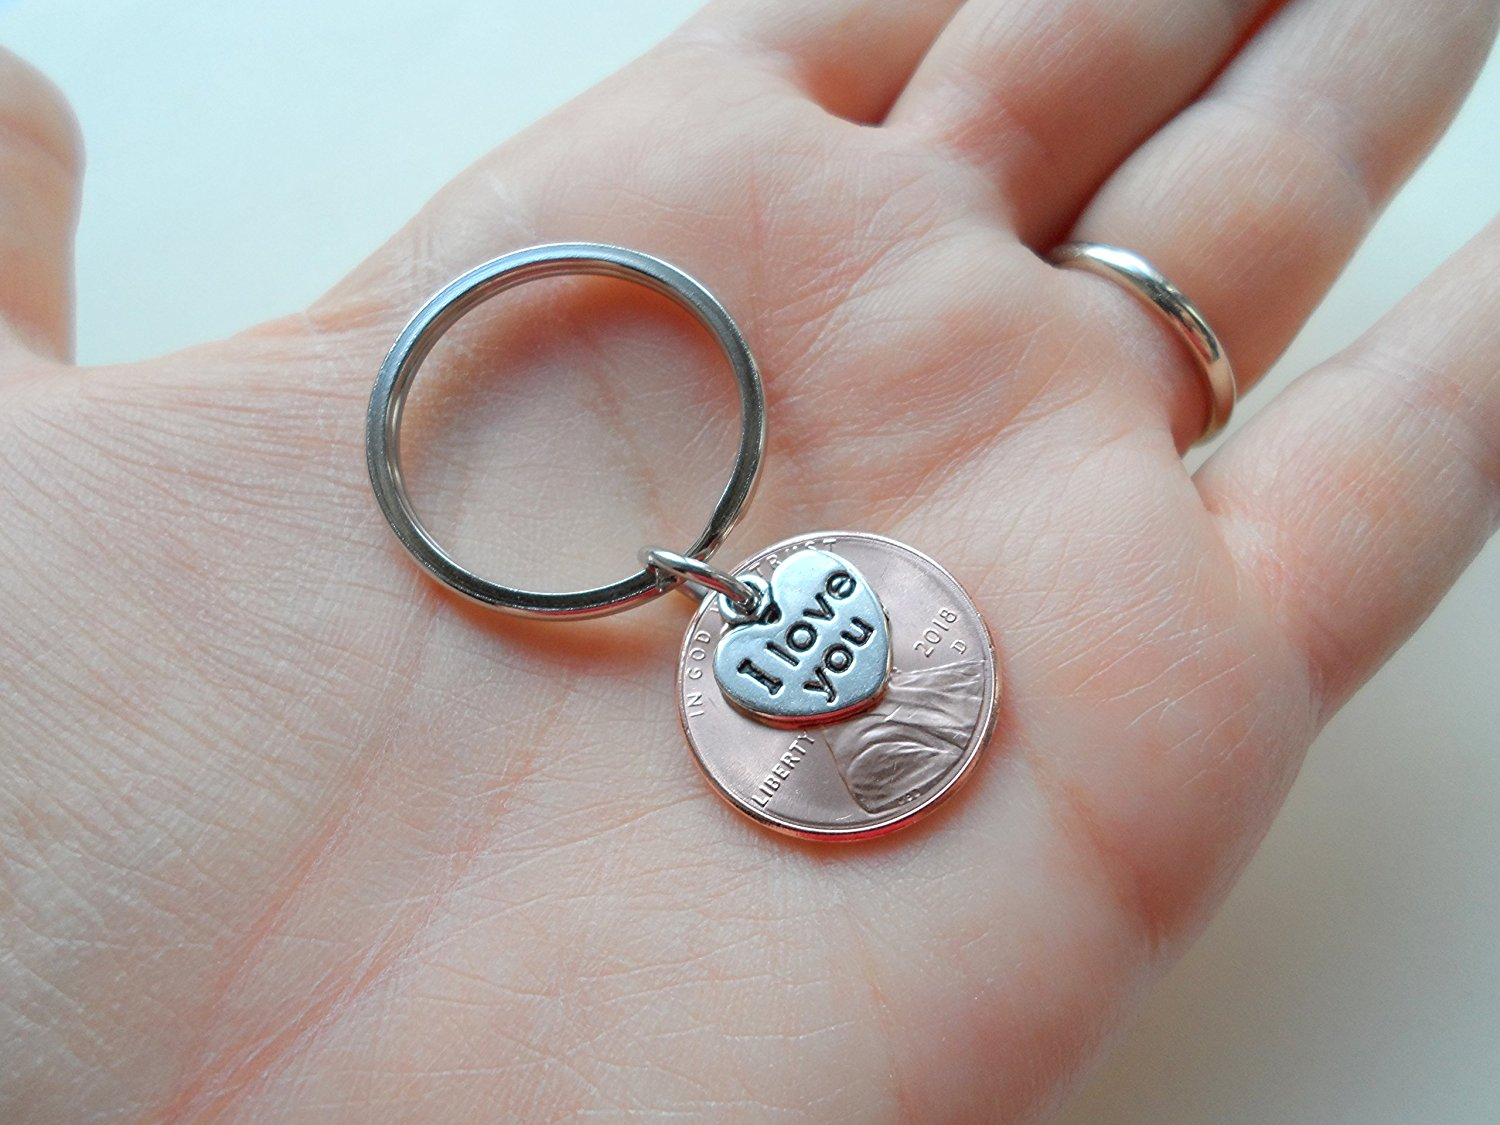 I Love You Heart Charm Layered Over 2018 Us One Cent Penny Keychain